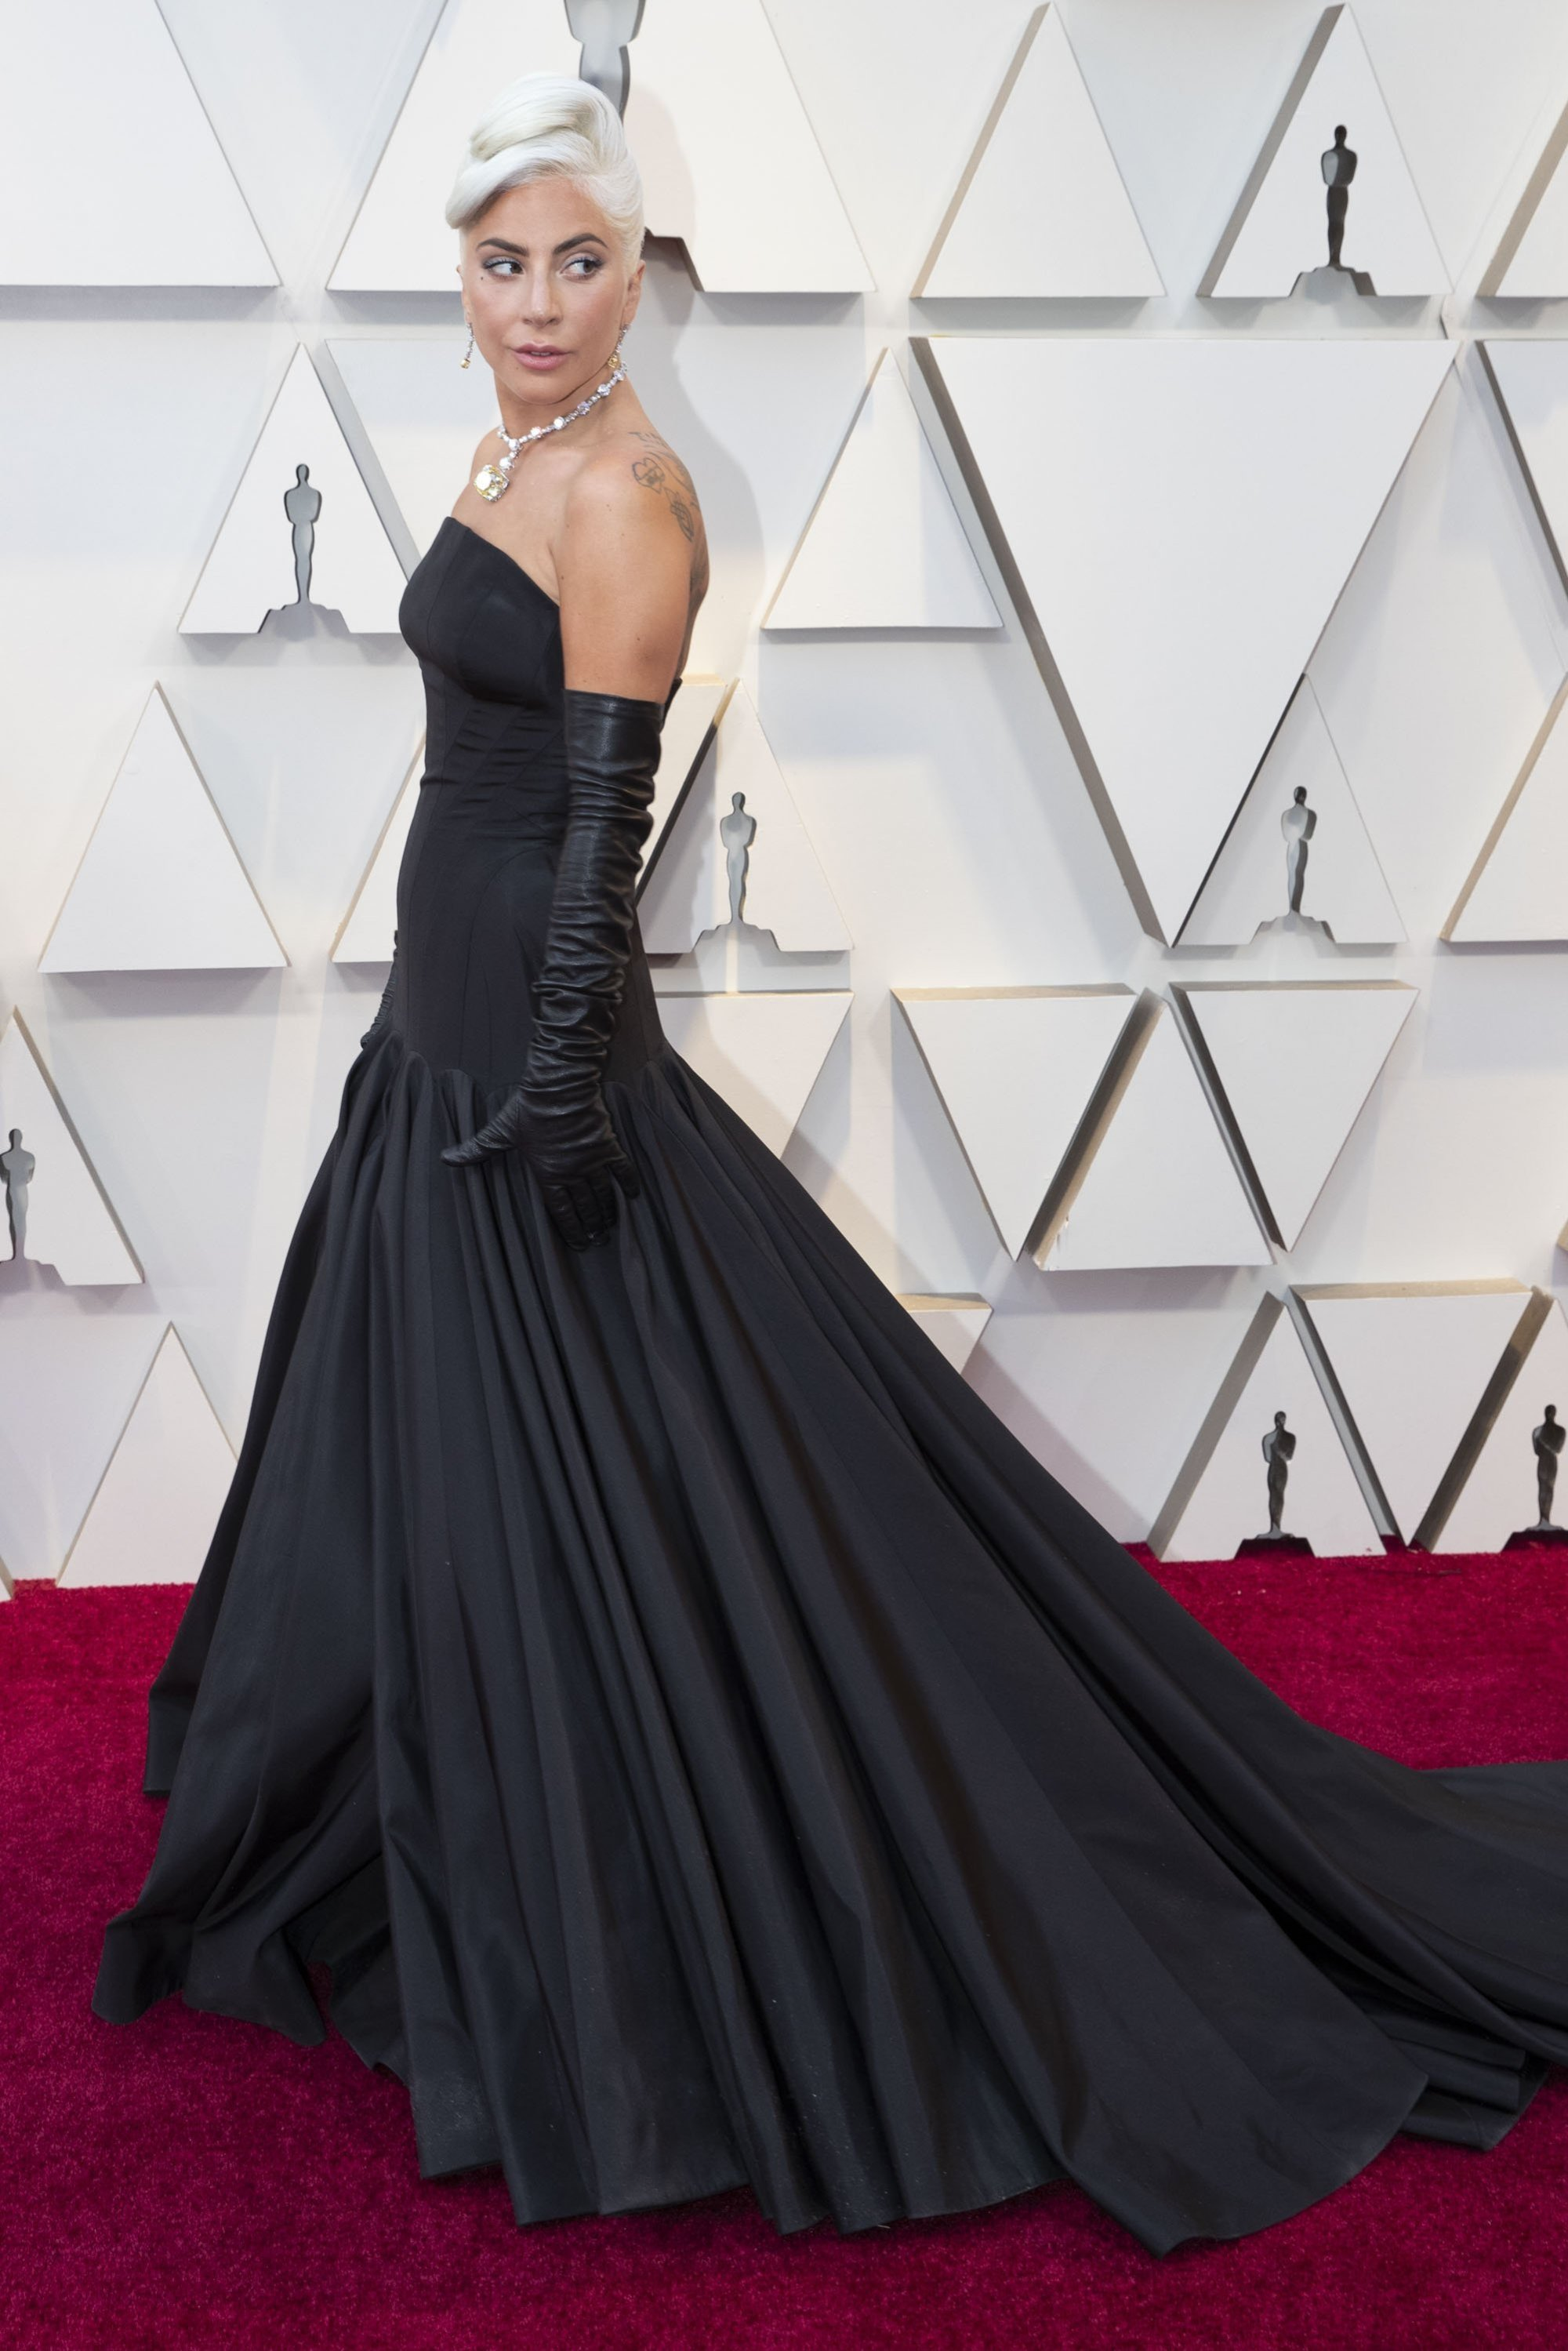 Lady Gaga: Red Carpet from the The 91st Oscar broadcast on Sunday, Feb. 24, 2019, at the Dolby Theatre.